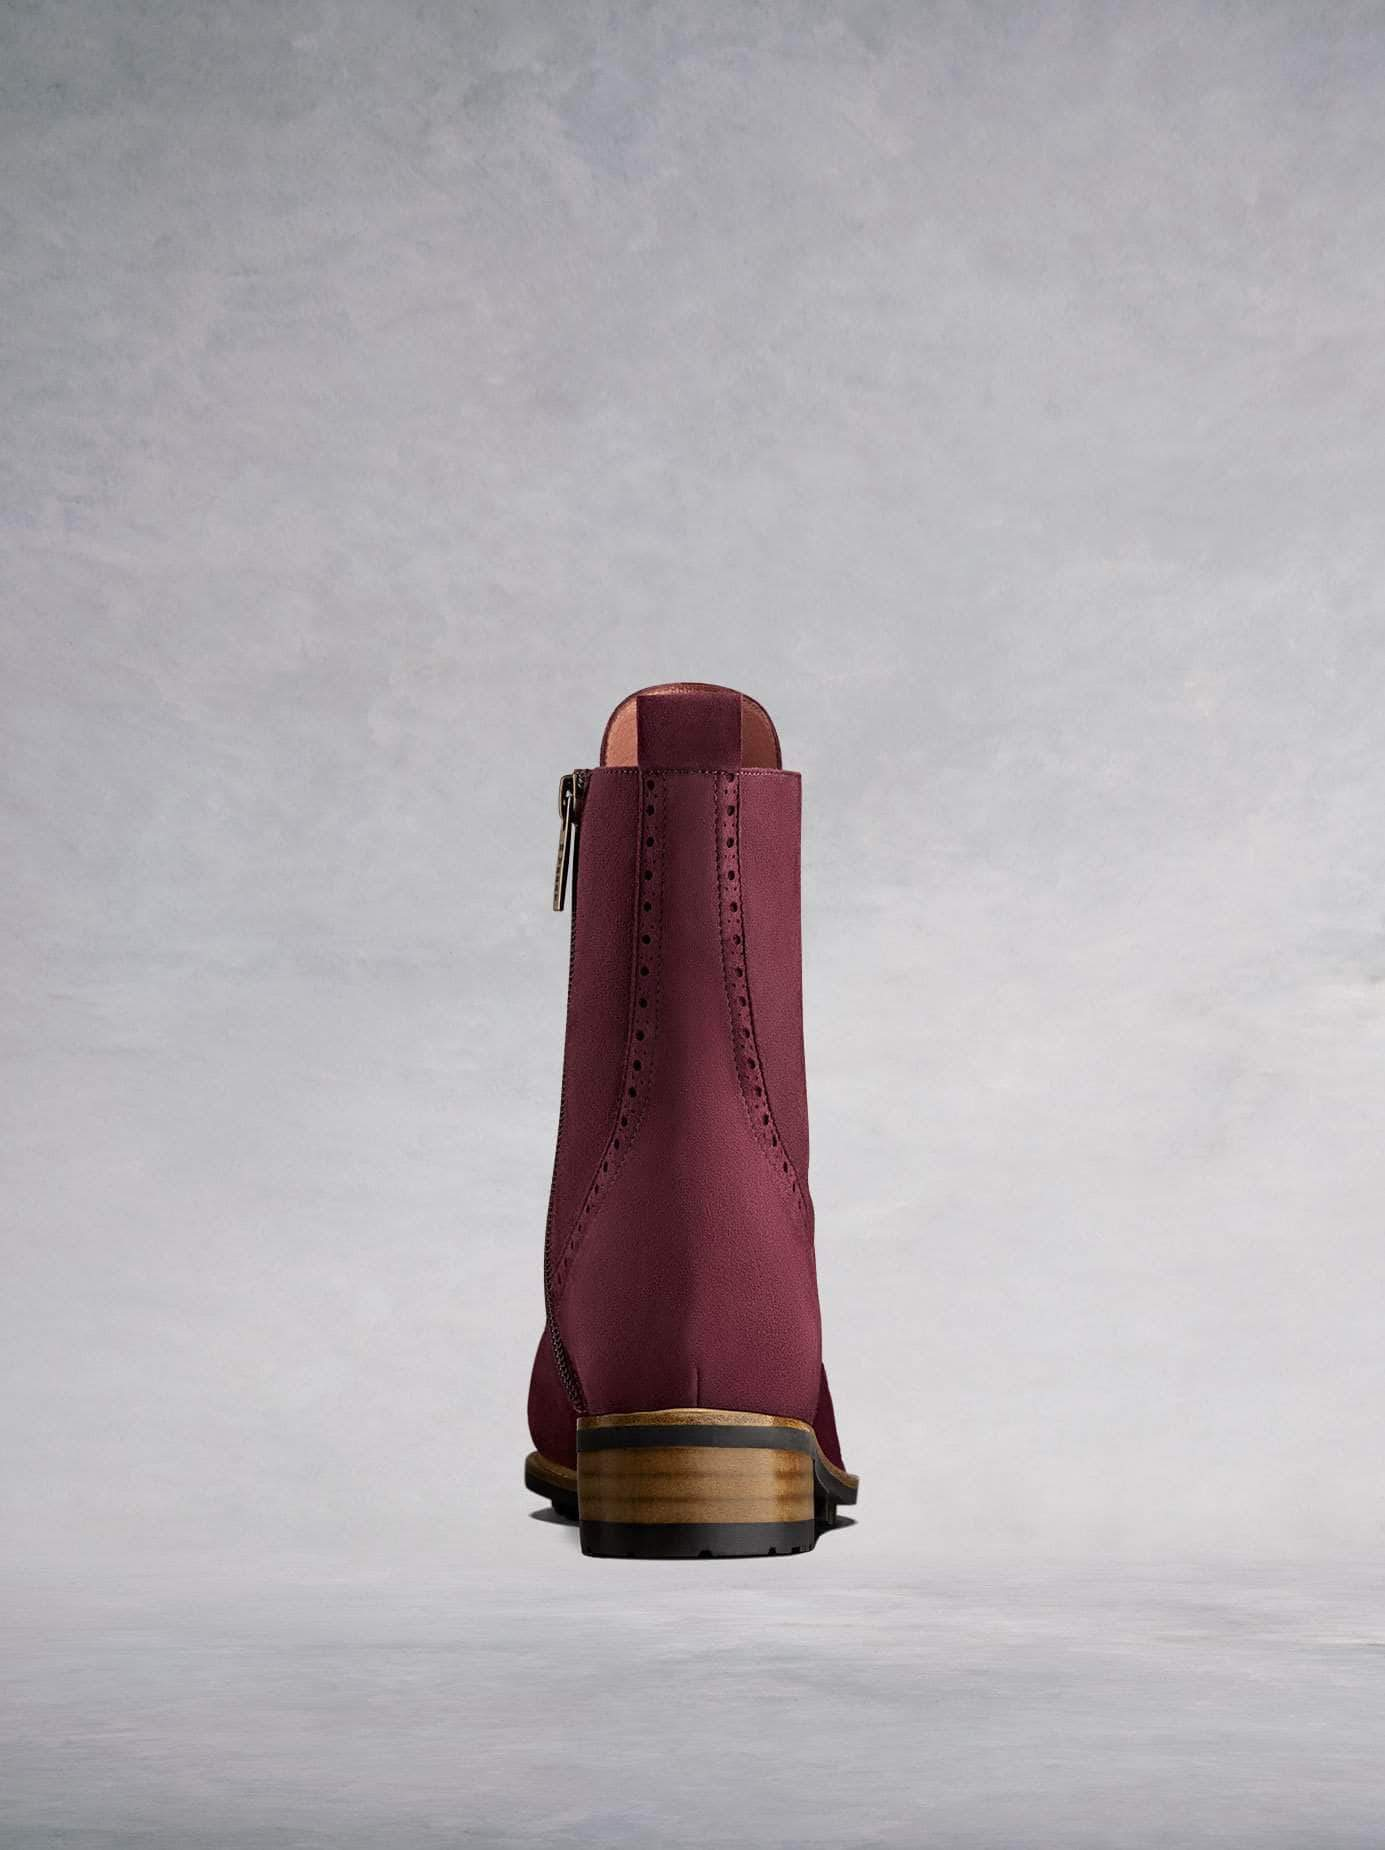 Balla burgundy has a contrast brown heel against the black rubber tread sole.